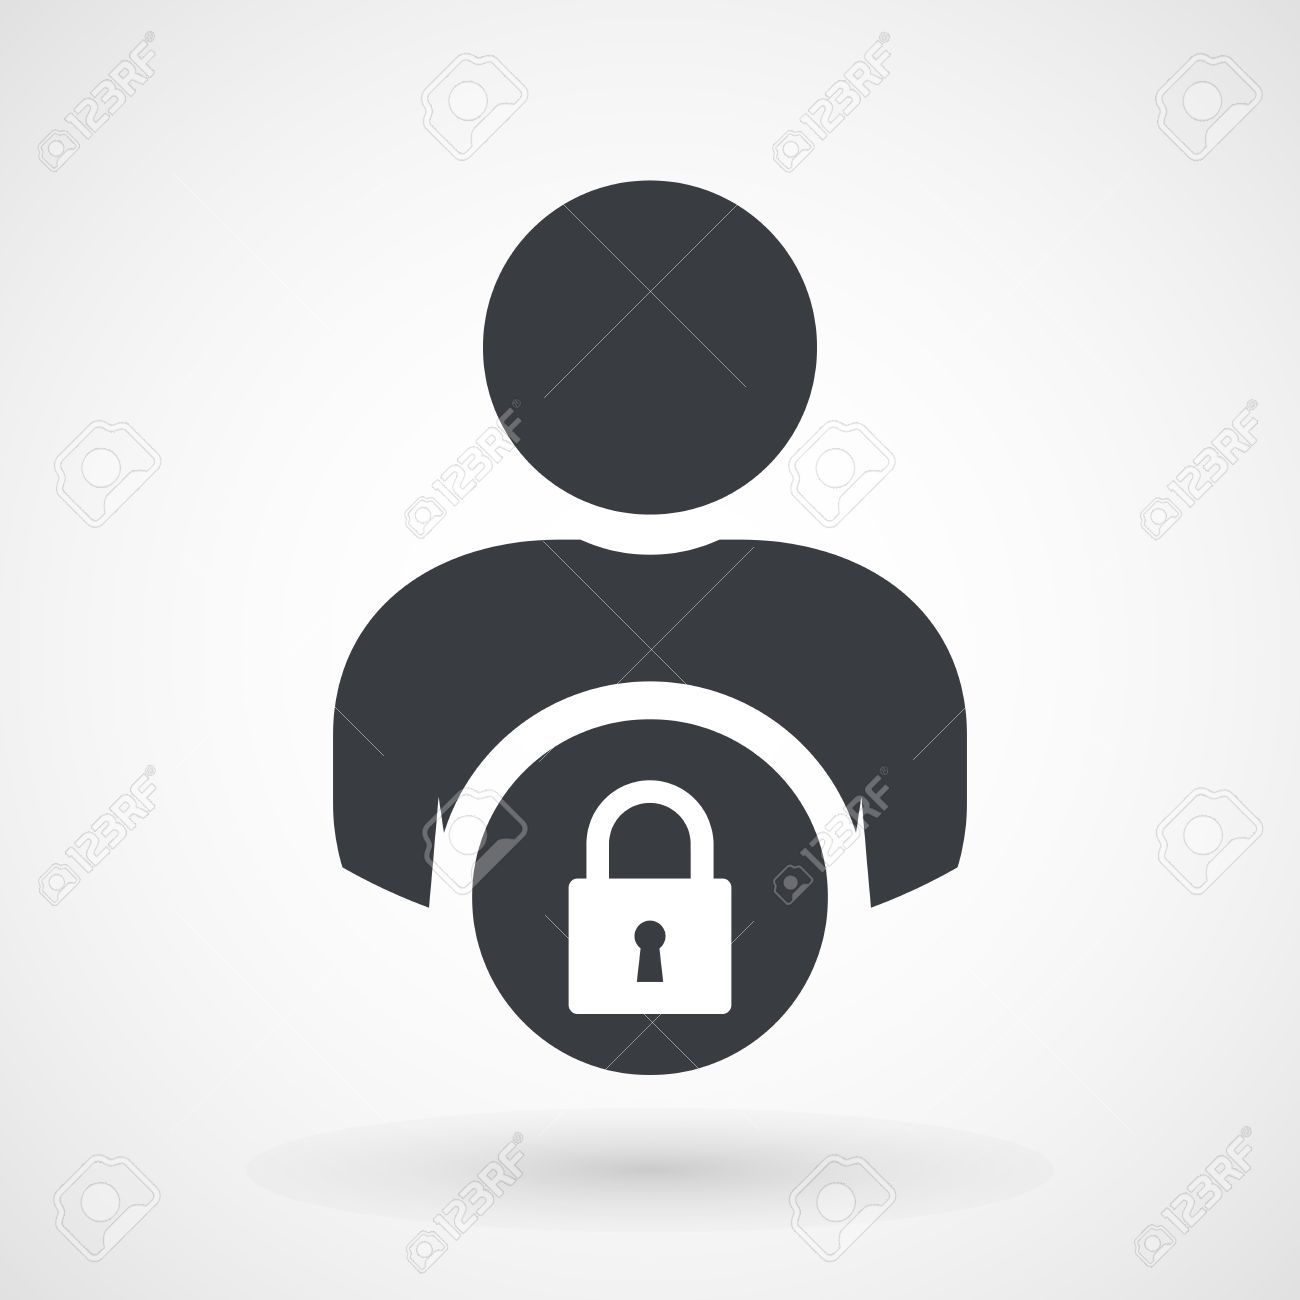 User Login Or Access Authentication Icon Royalty Free Cliparts ...